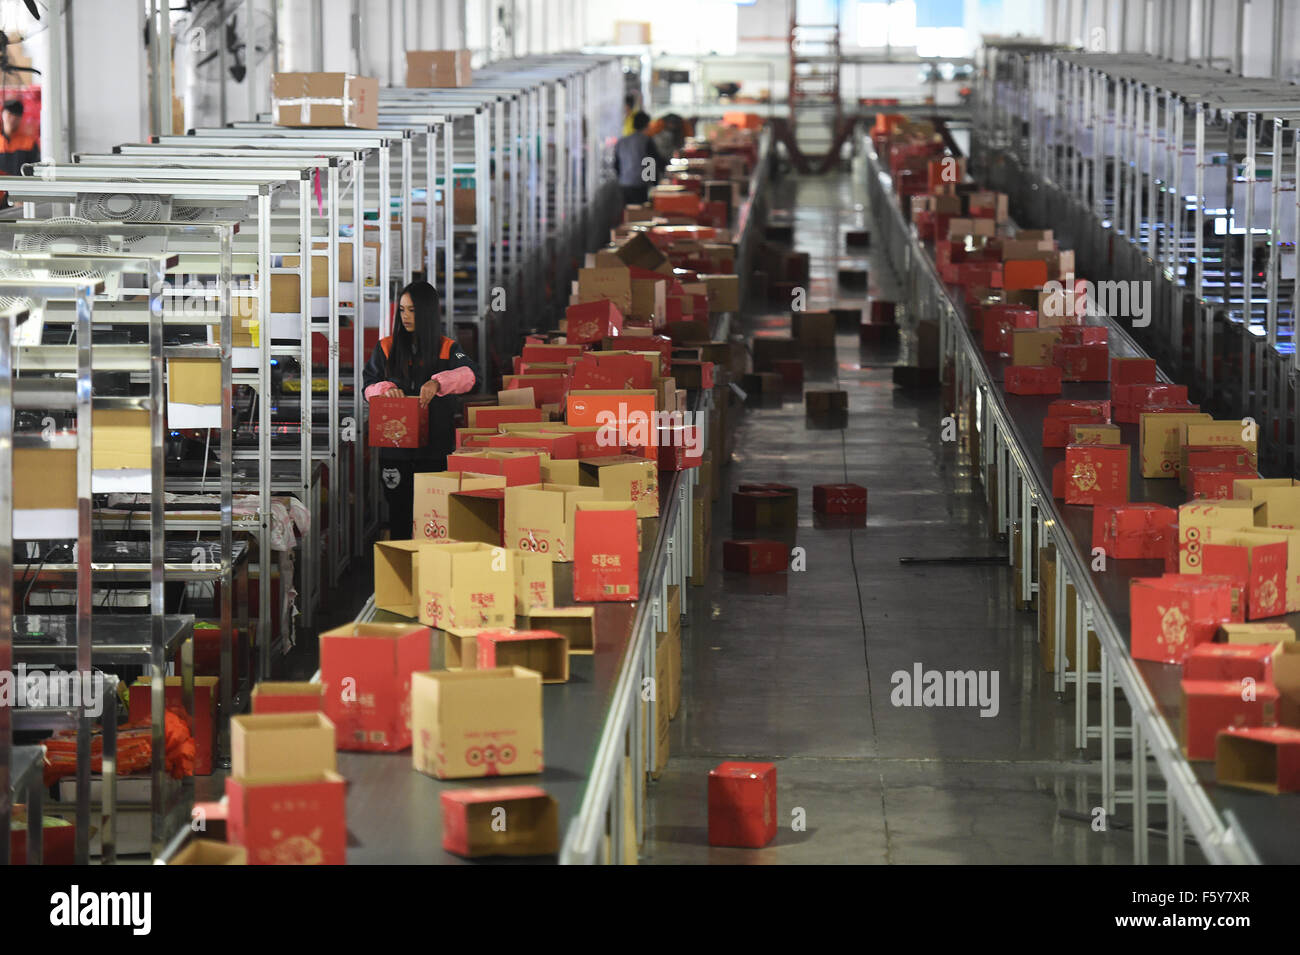 (151110) -- HANGZHOU, Nov. 10, 2015 (Xinhua) -- Workers sort out goods bought by customers online at a deliver center - Stock Image